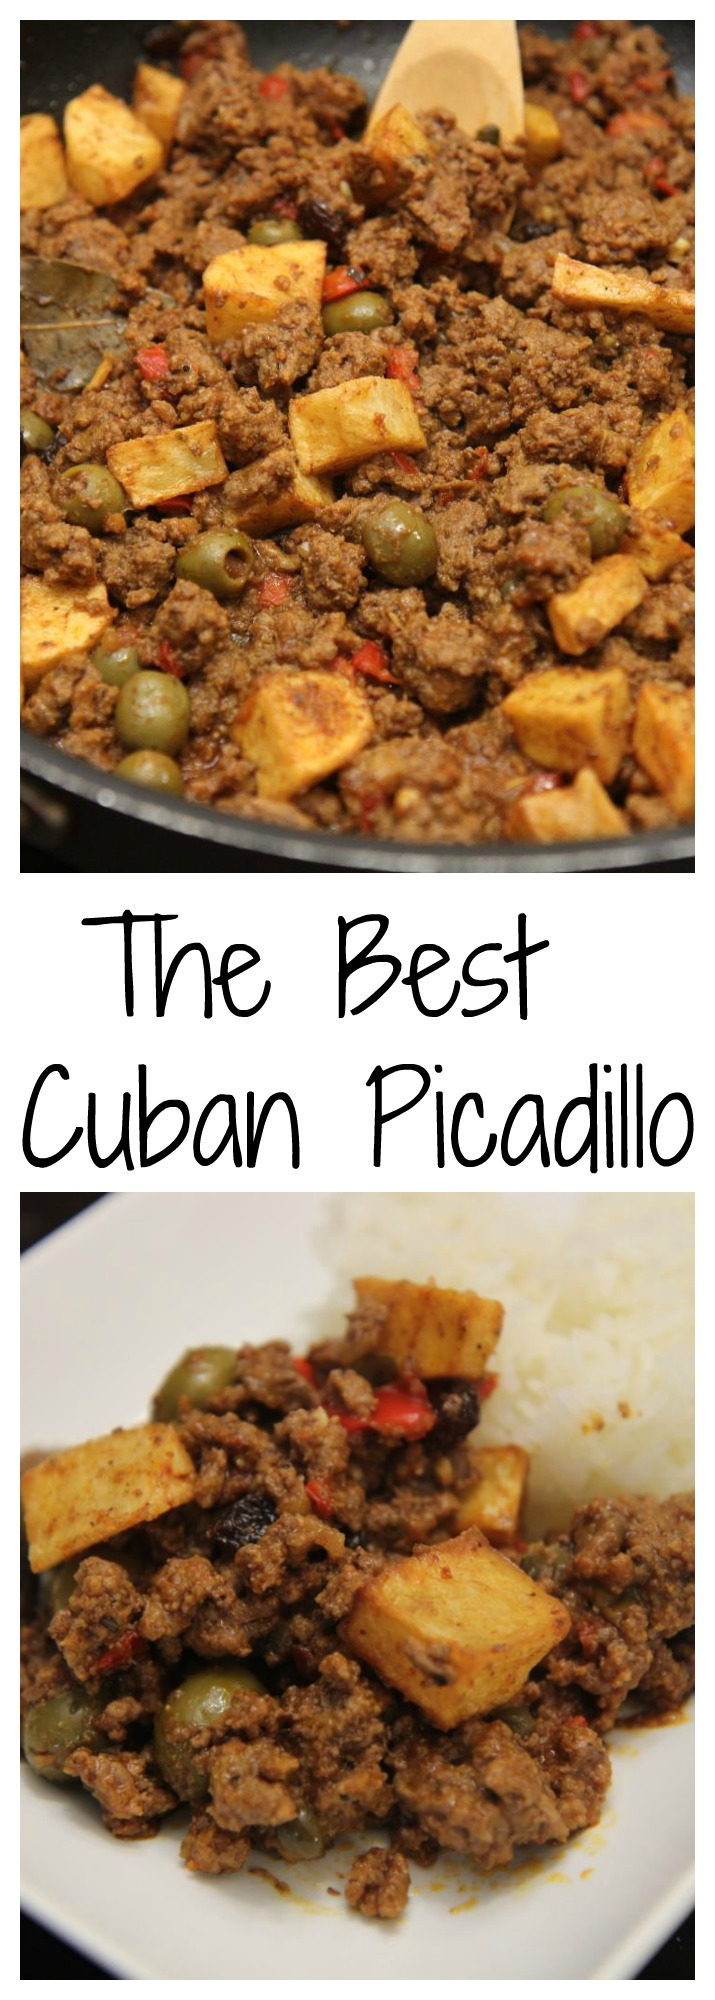 Learn how to make Cuban Picadillo at cookedbyjulie.com